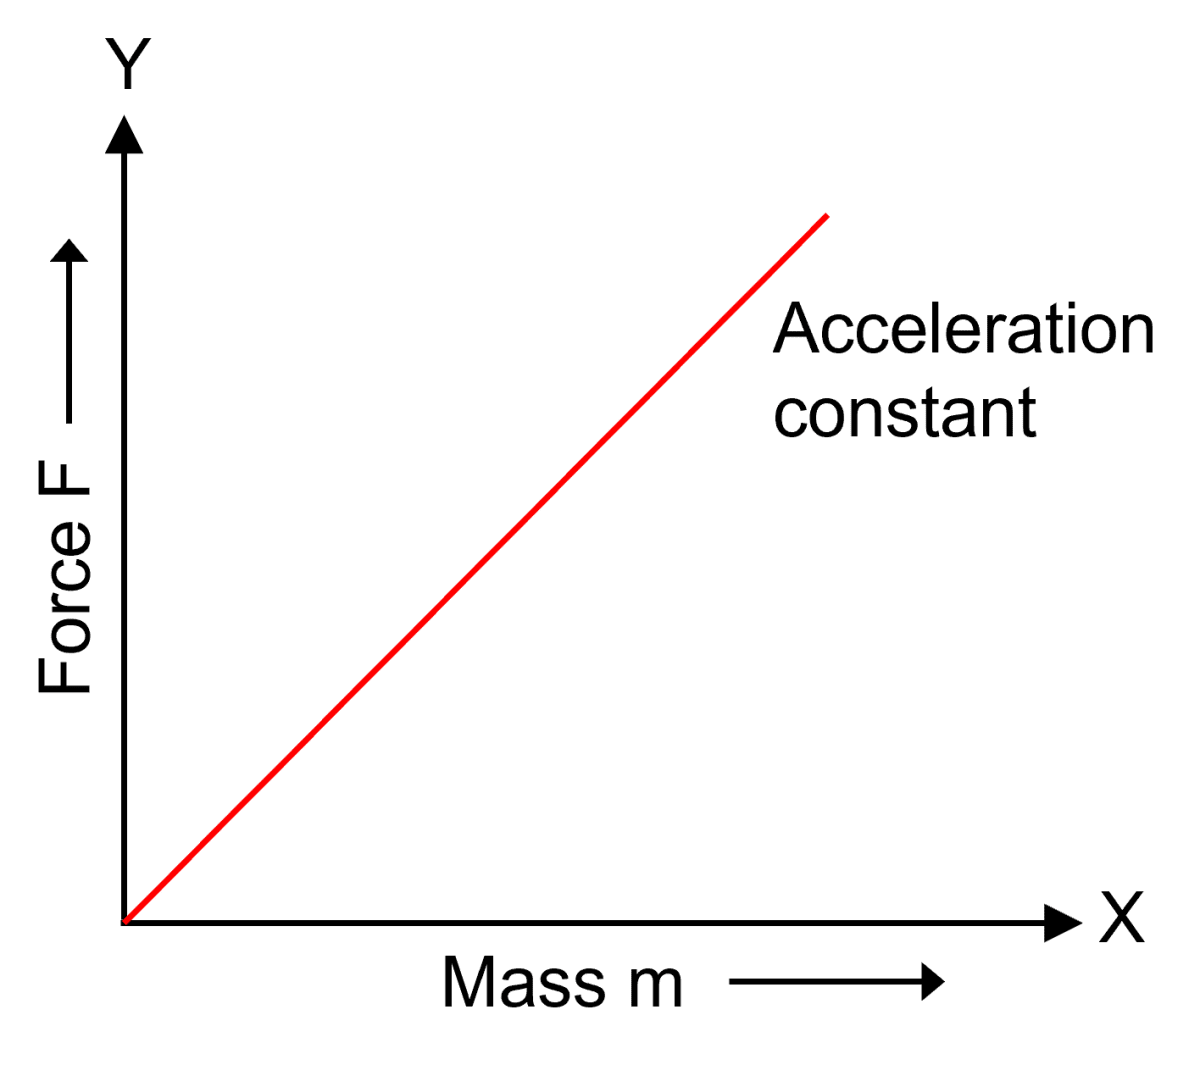 Draw graph to show the dependence of force on mass for a constant acceleration. Laws of Motion, Concise Physics Solutions ICSE Class 9.